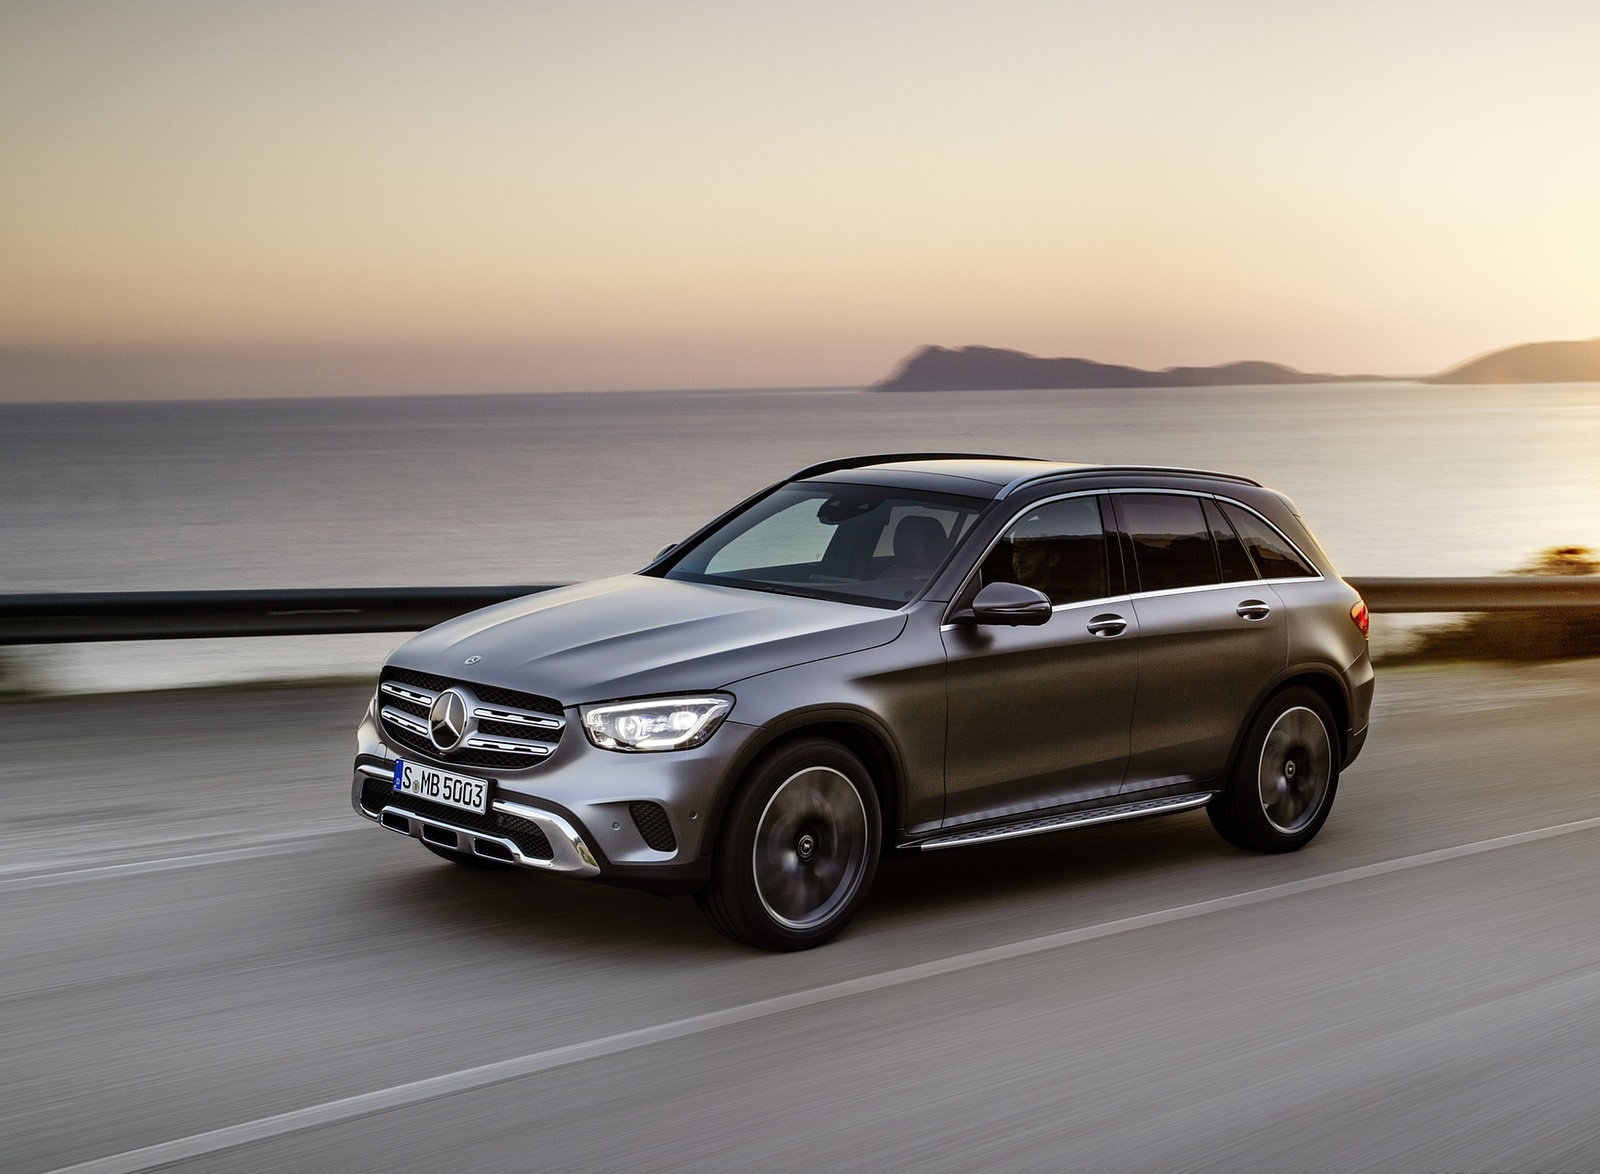 2020 Mercedes-Benz GLC (Color: Designo Selenite Grey Magno) Front Three-Quarter Wallpapers #40 of 62